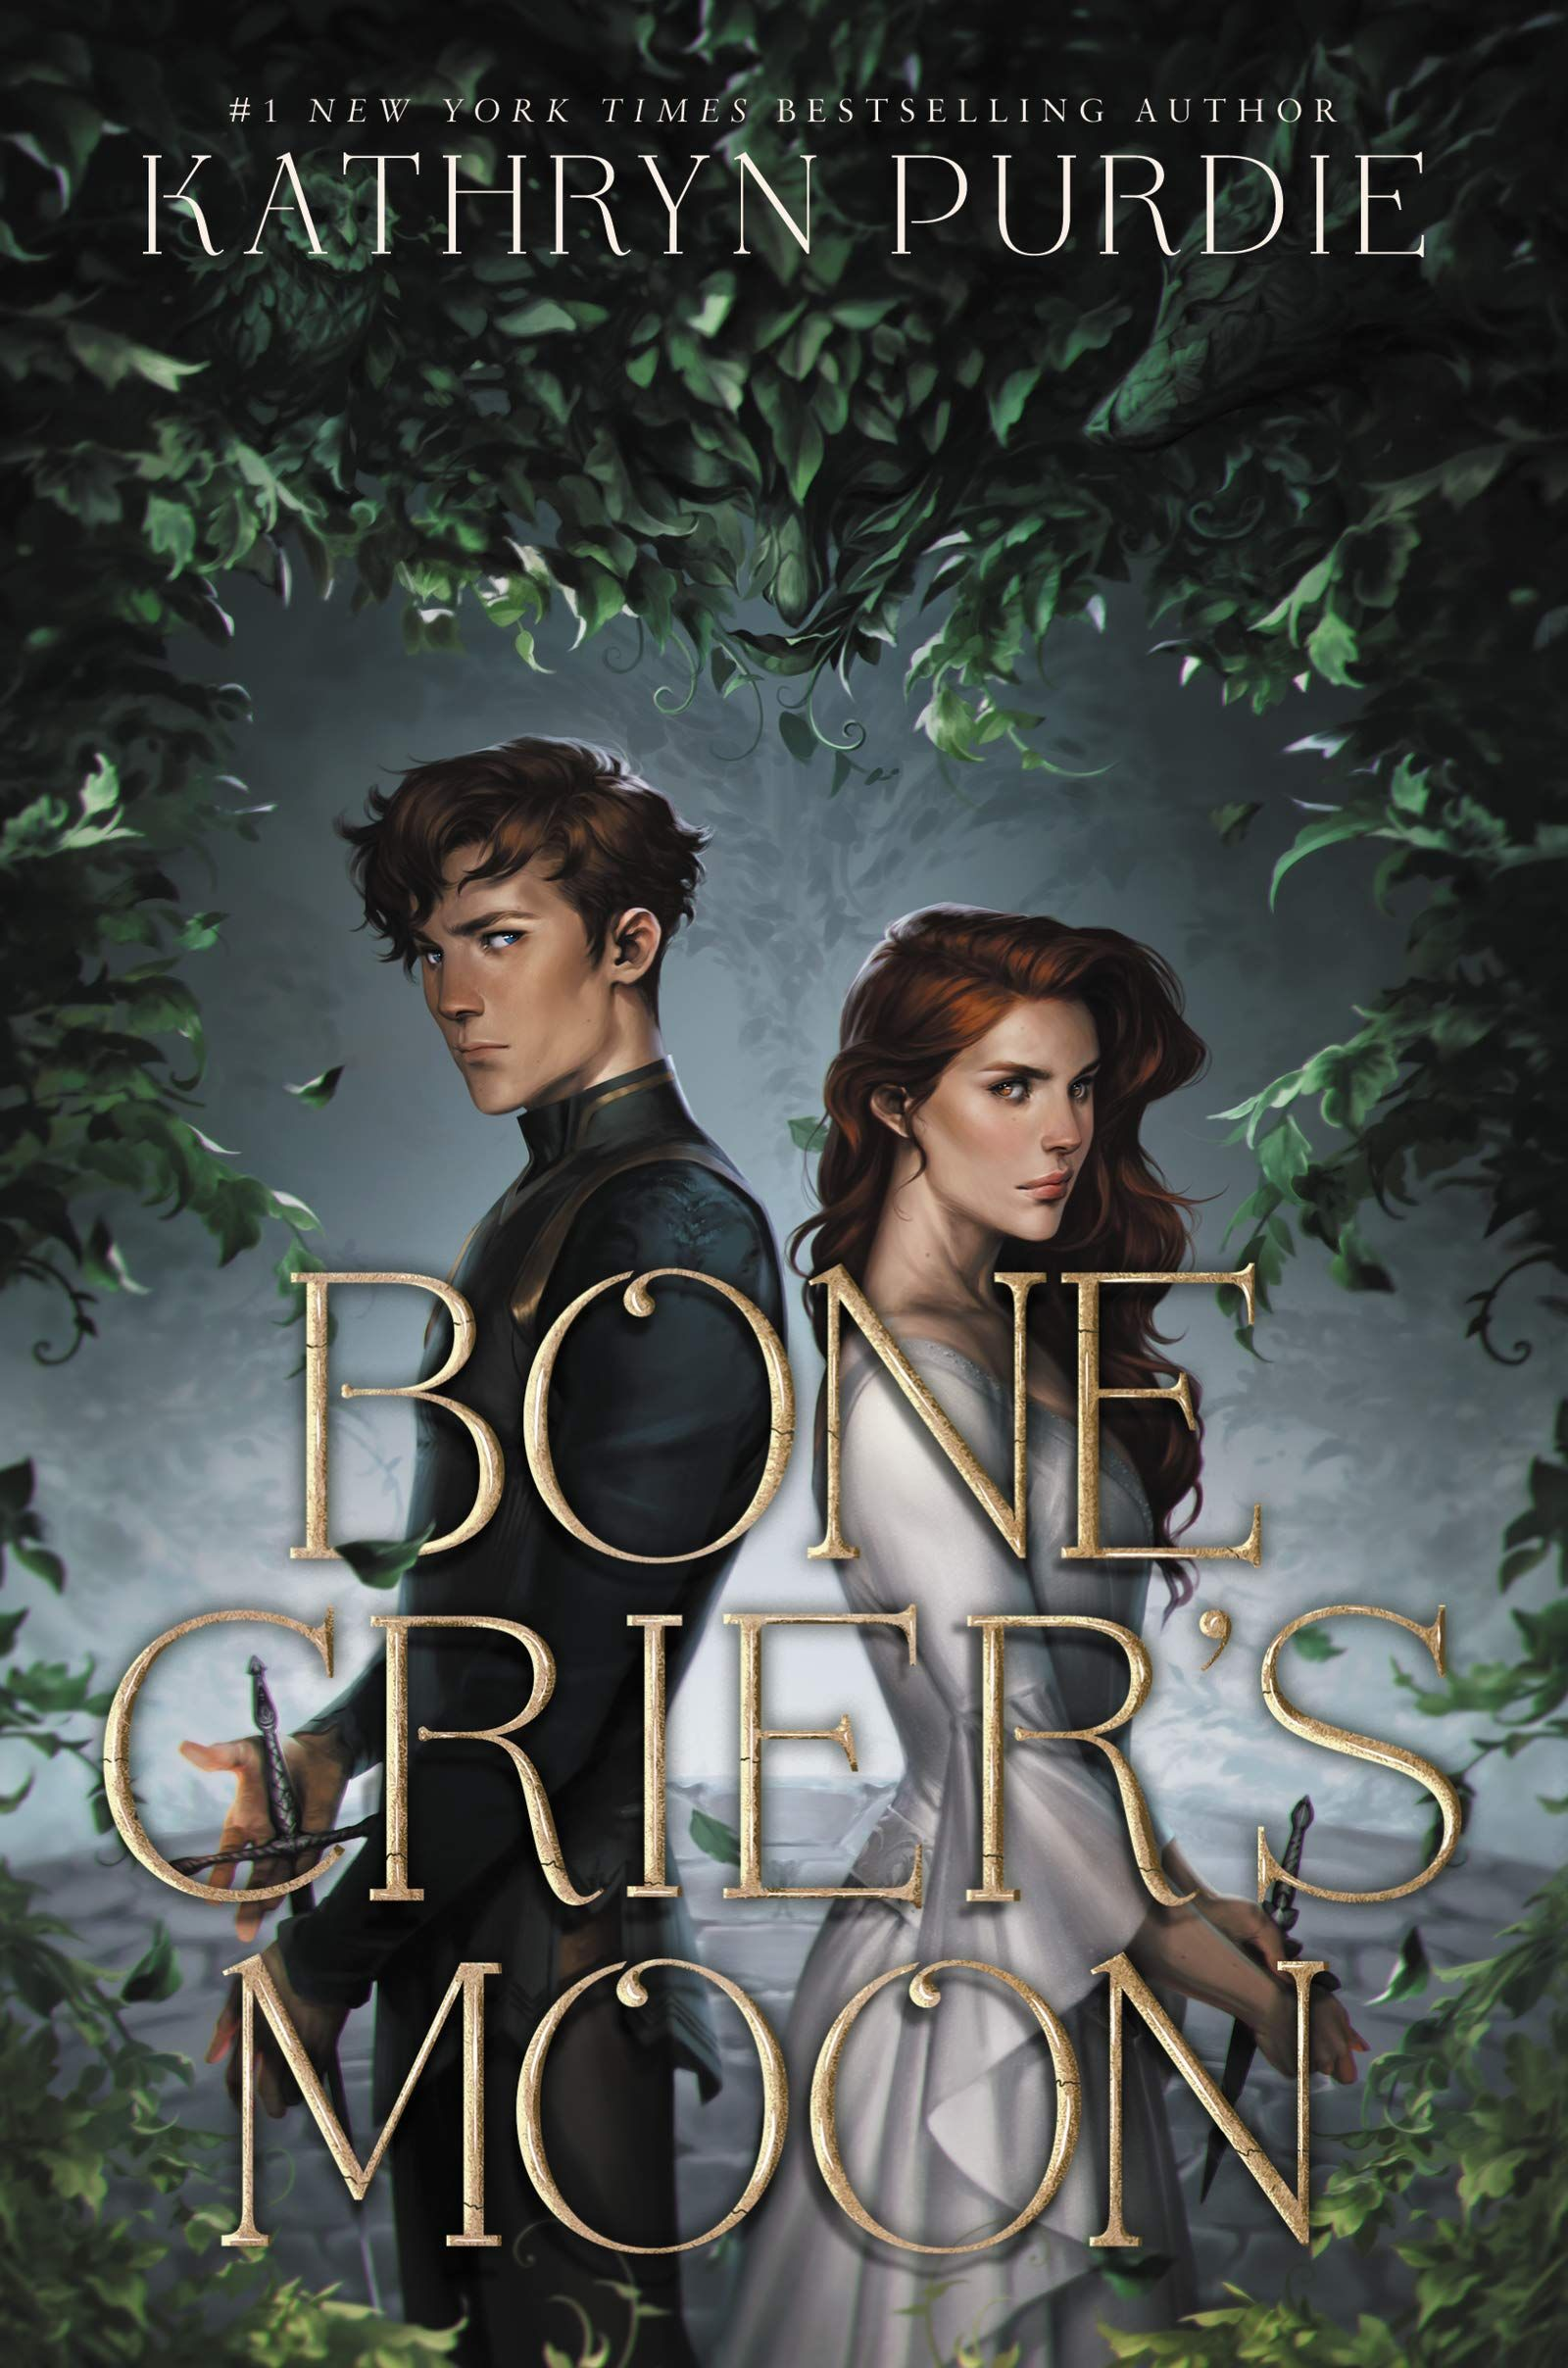 March 2020 Book Releases Novelknight Book Reviews Fantasy Books Ya Book Covers Fantasy Book Covers